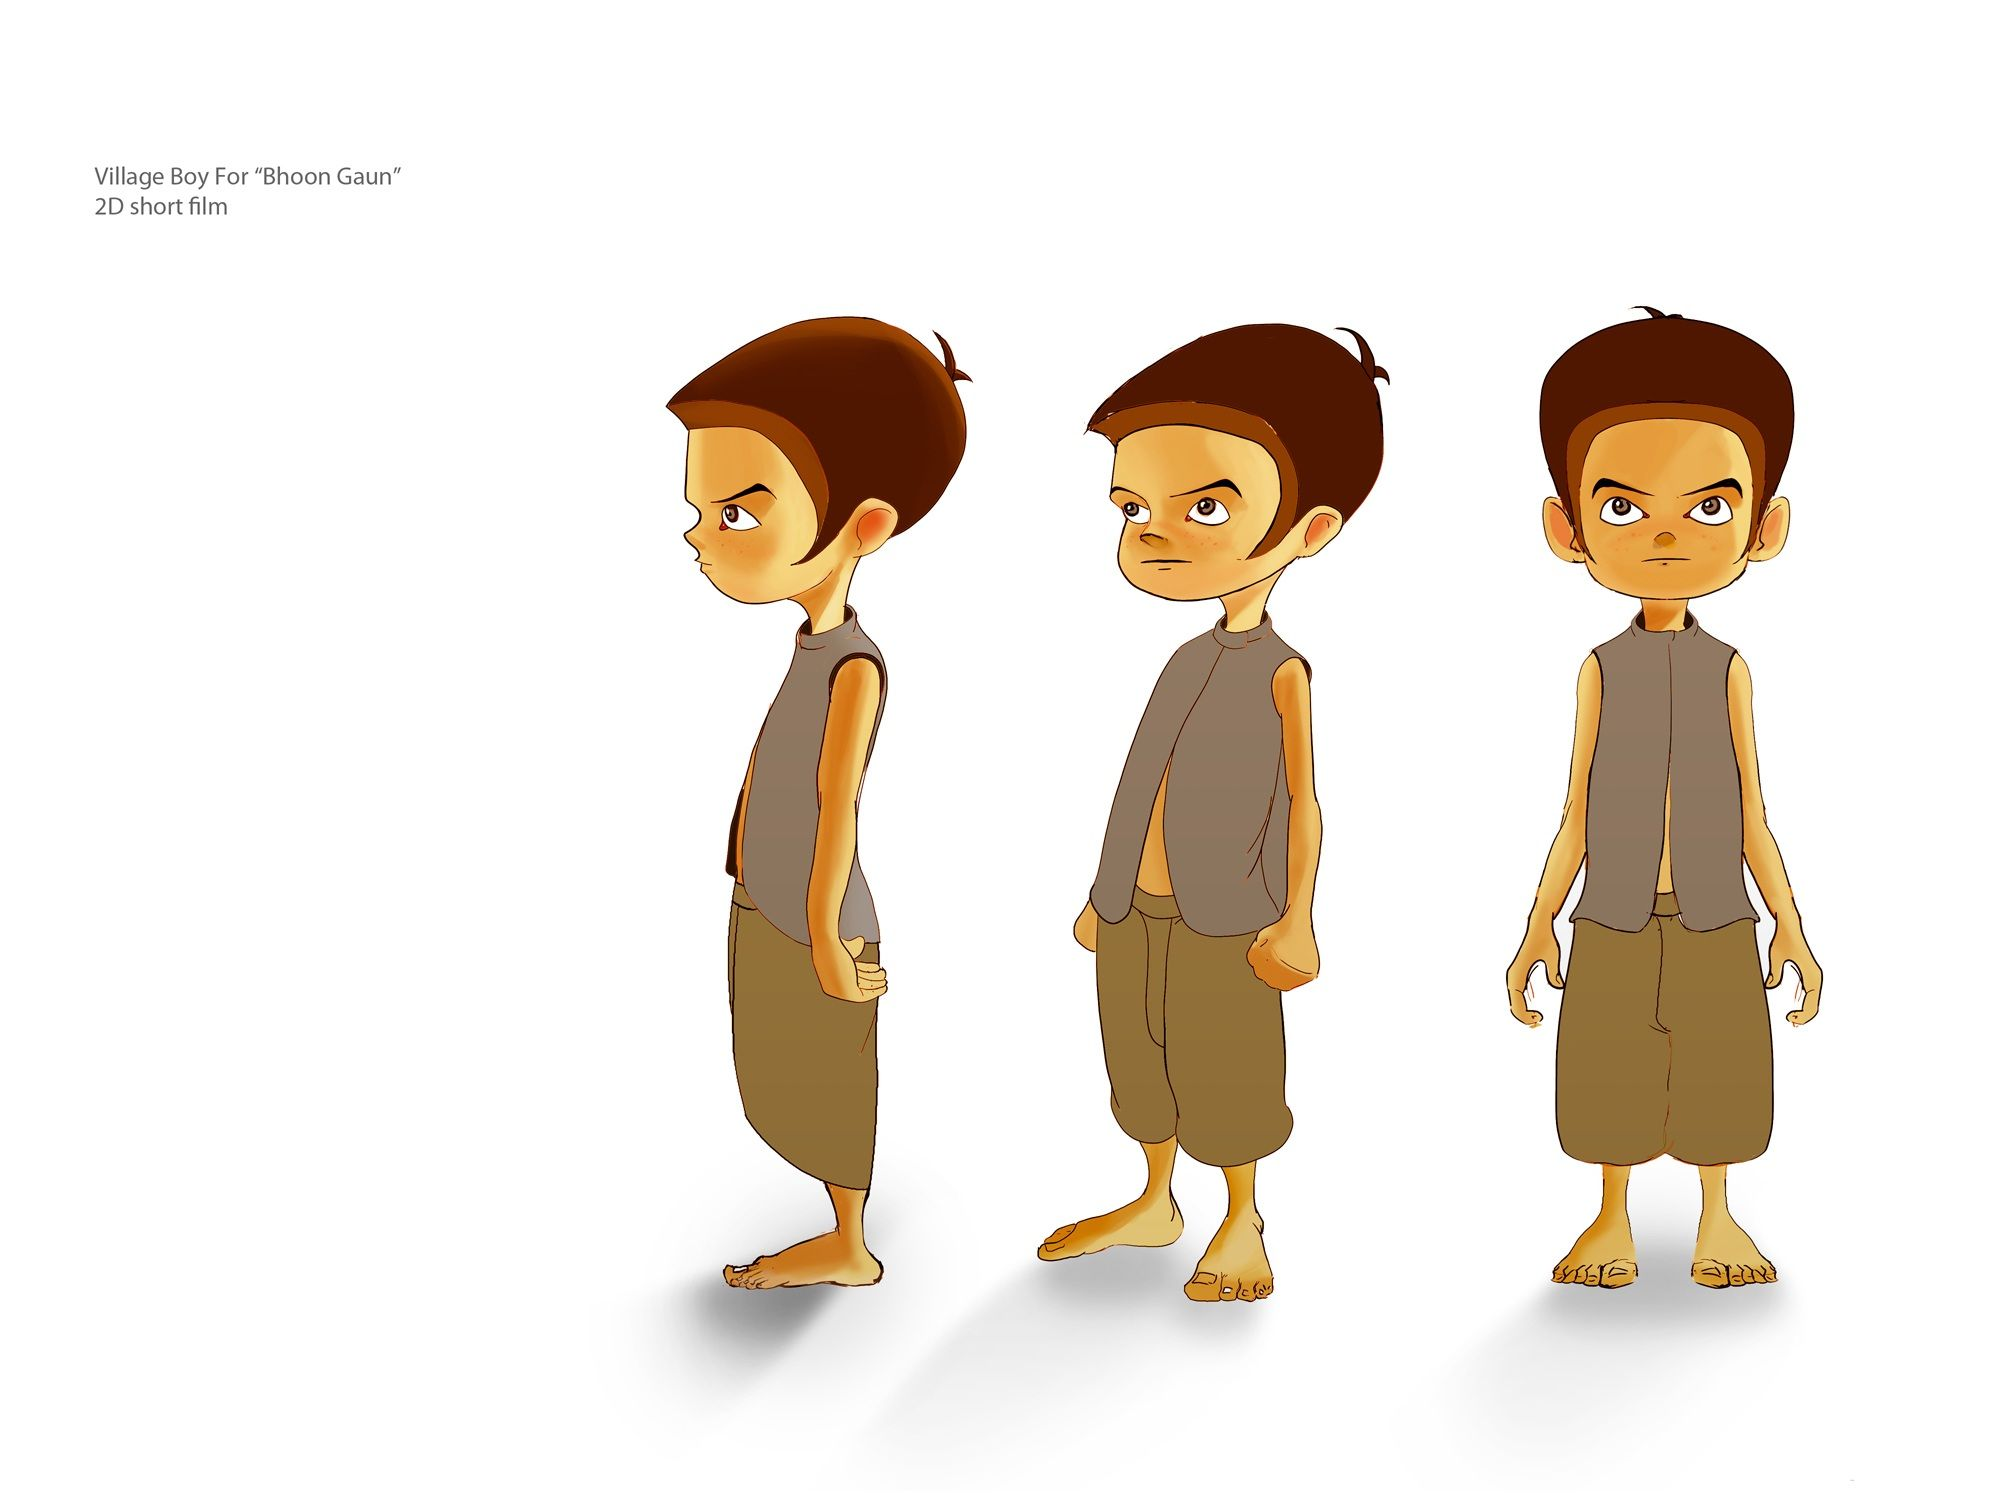 Character Conceptual Design : Village kid character for d short film bhoot gaun